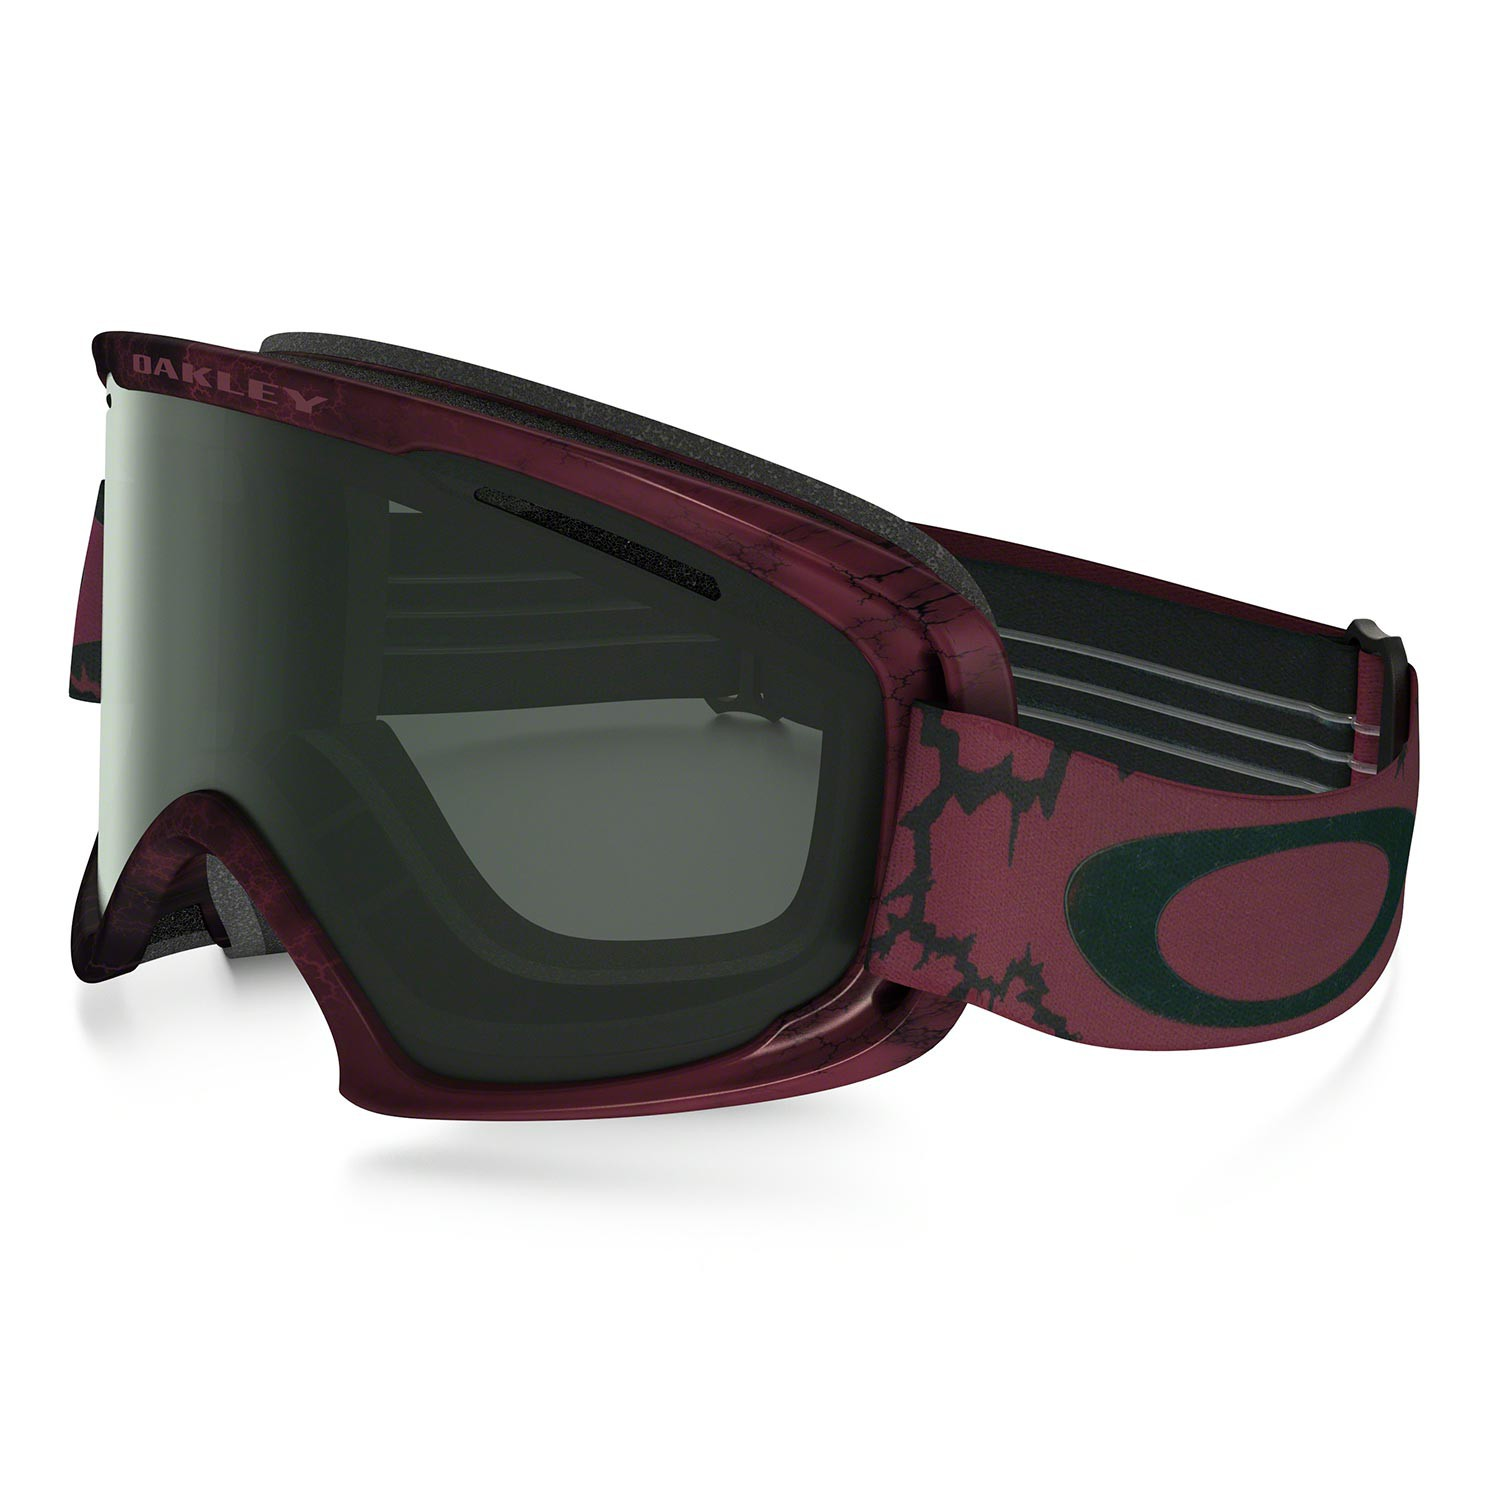 5a301d0cb0 Oakley O2 XL. SOLD OUT - CANNOT BE ORDERED. Color  chemist fired black